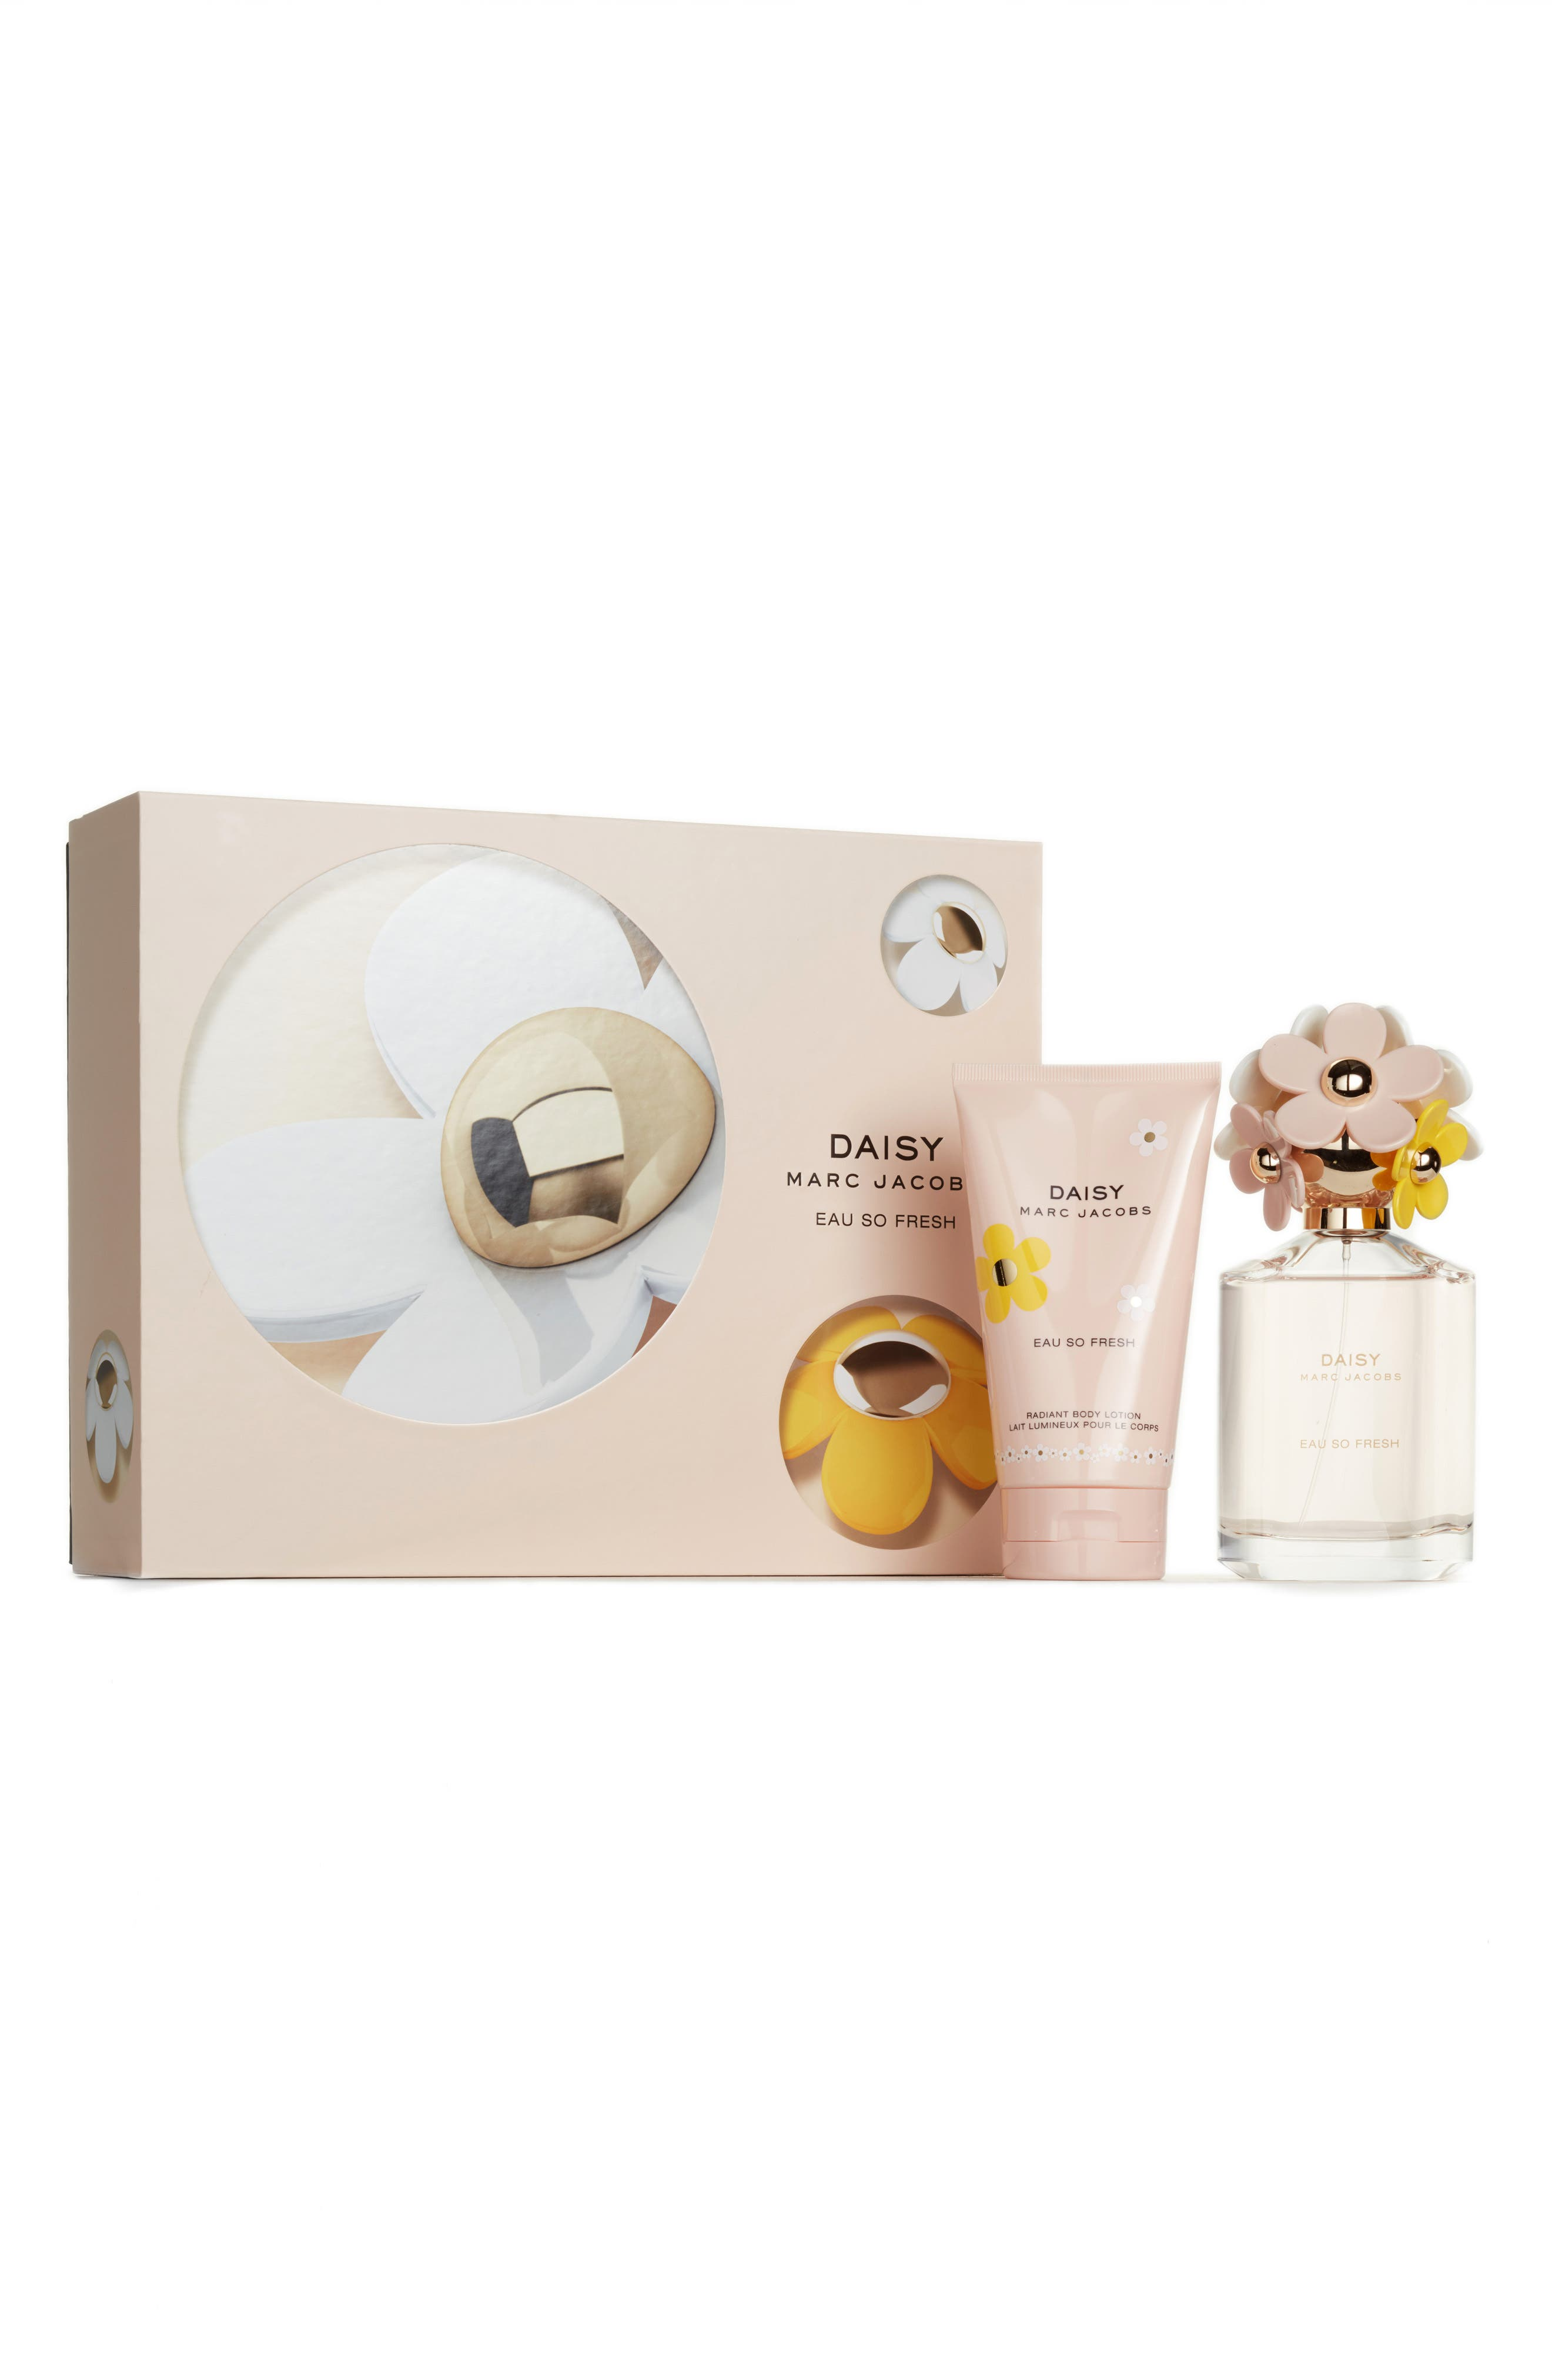 Alternate Image 1 Selected - MARC JACOBS Daisy Eau So Fresh Set ($147 Value)